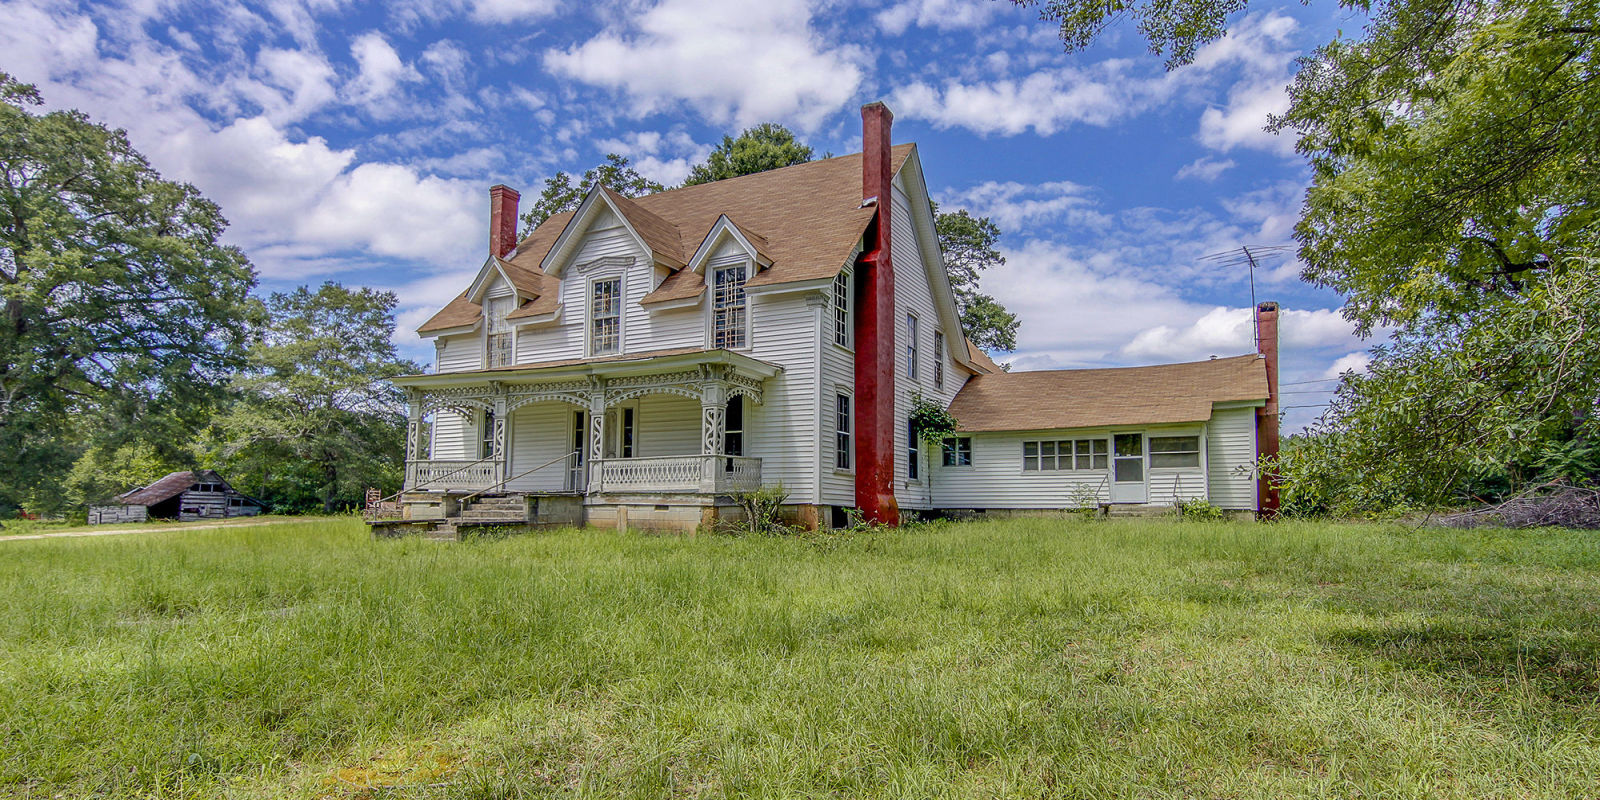 Georgia farmhouse fixer upper for sale georgia real estate for Old farm houses for sale in georgia